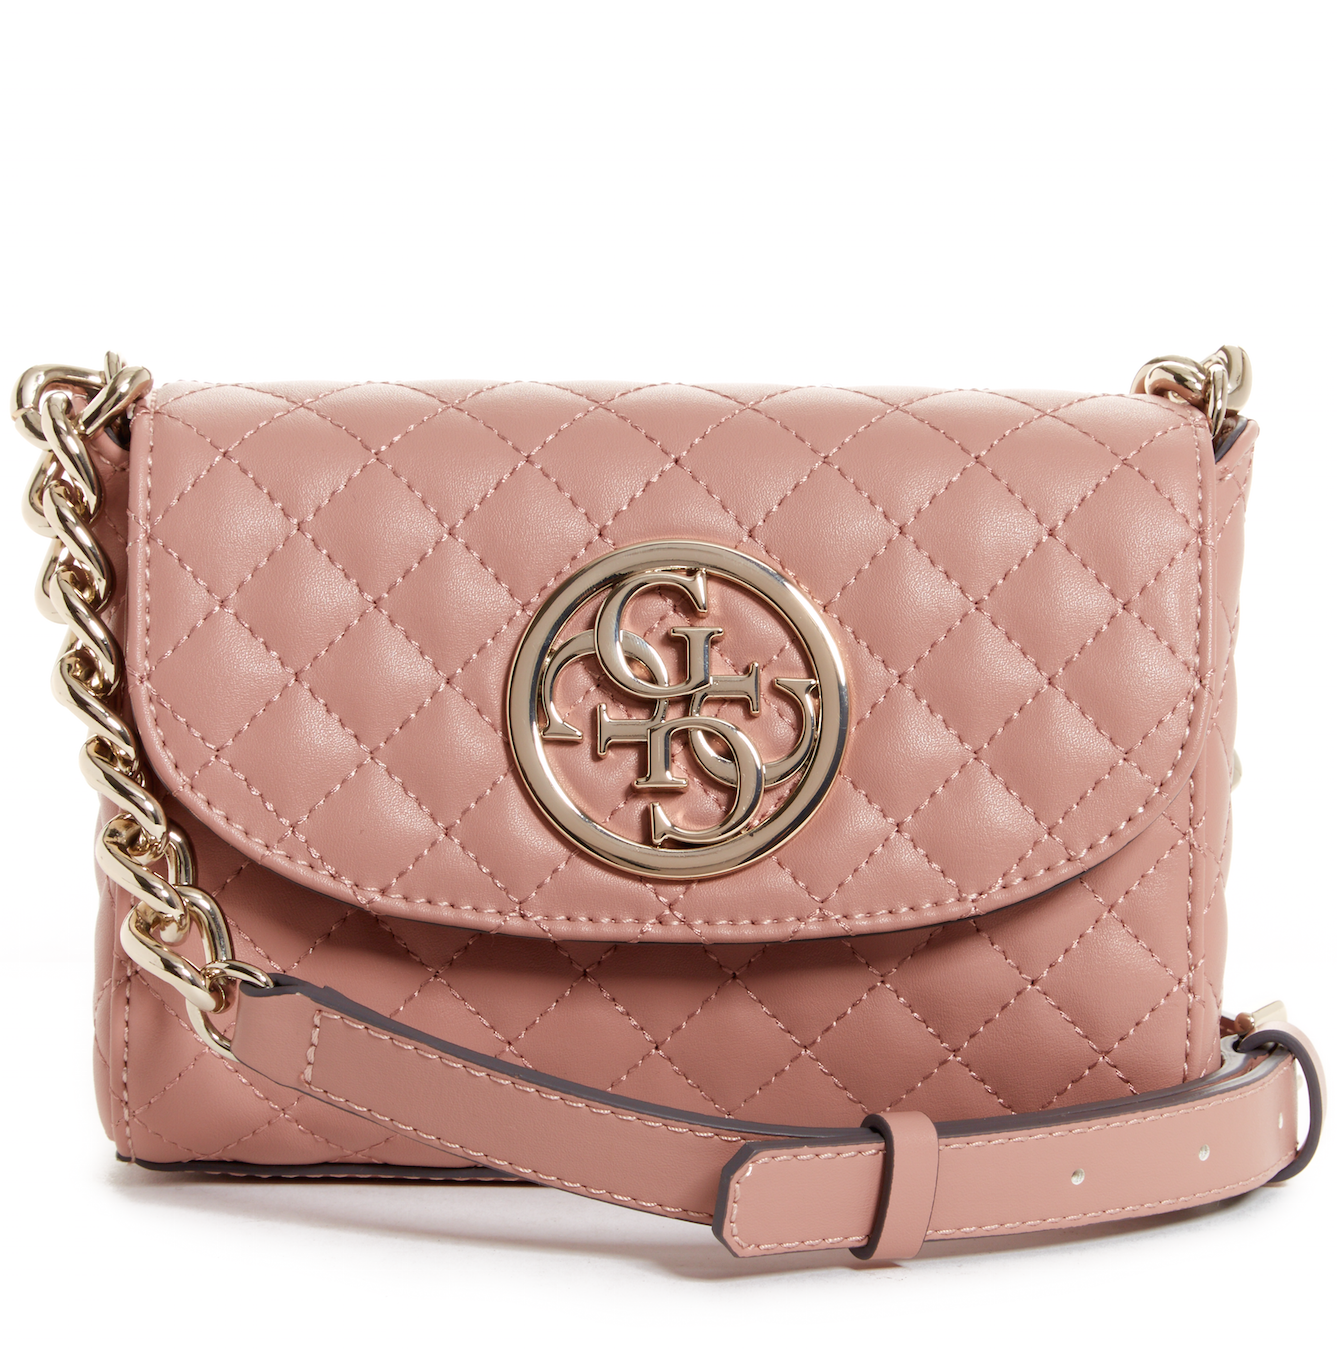 This rose gold shoulder bag is gorgeous to go from day to night